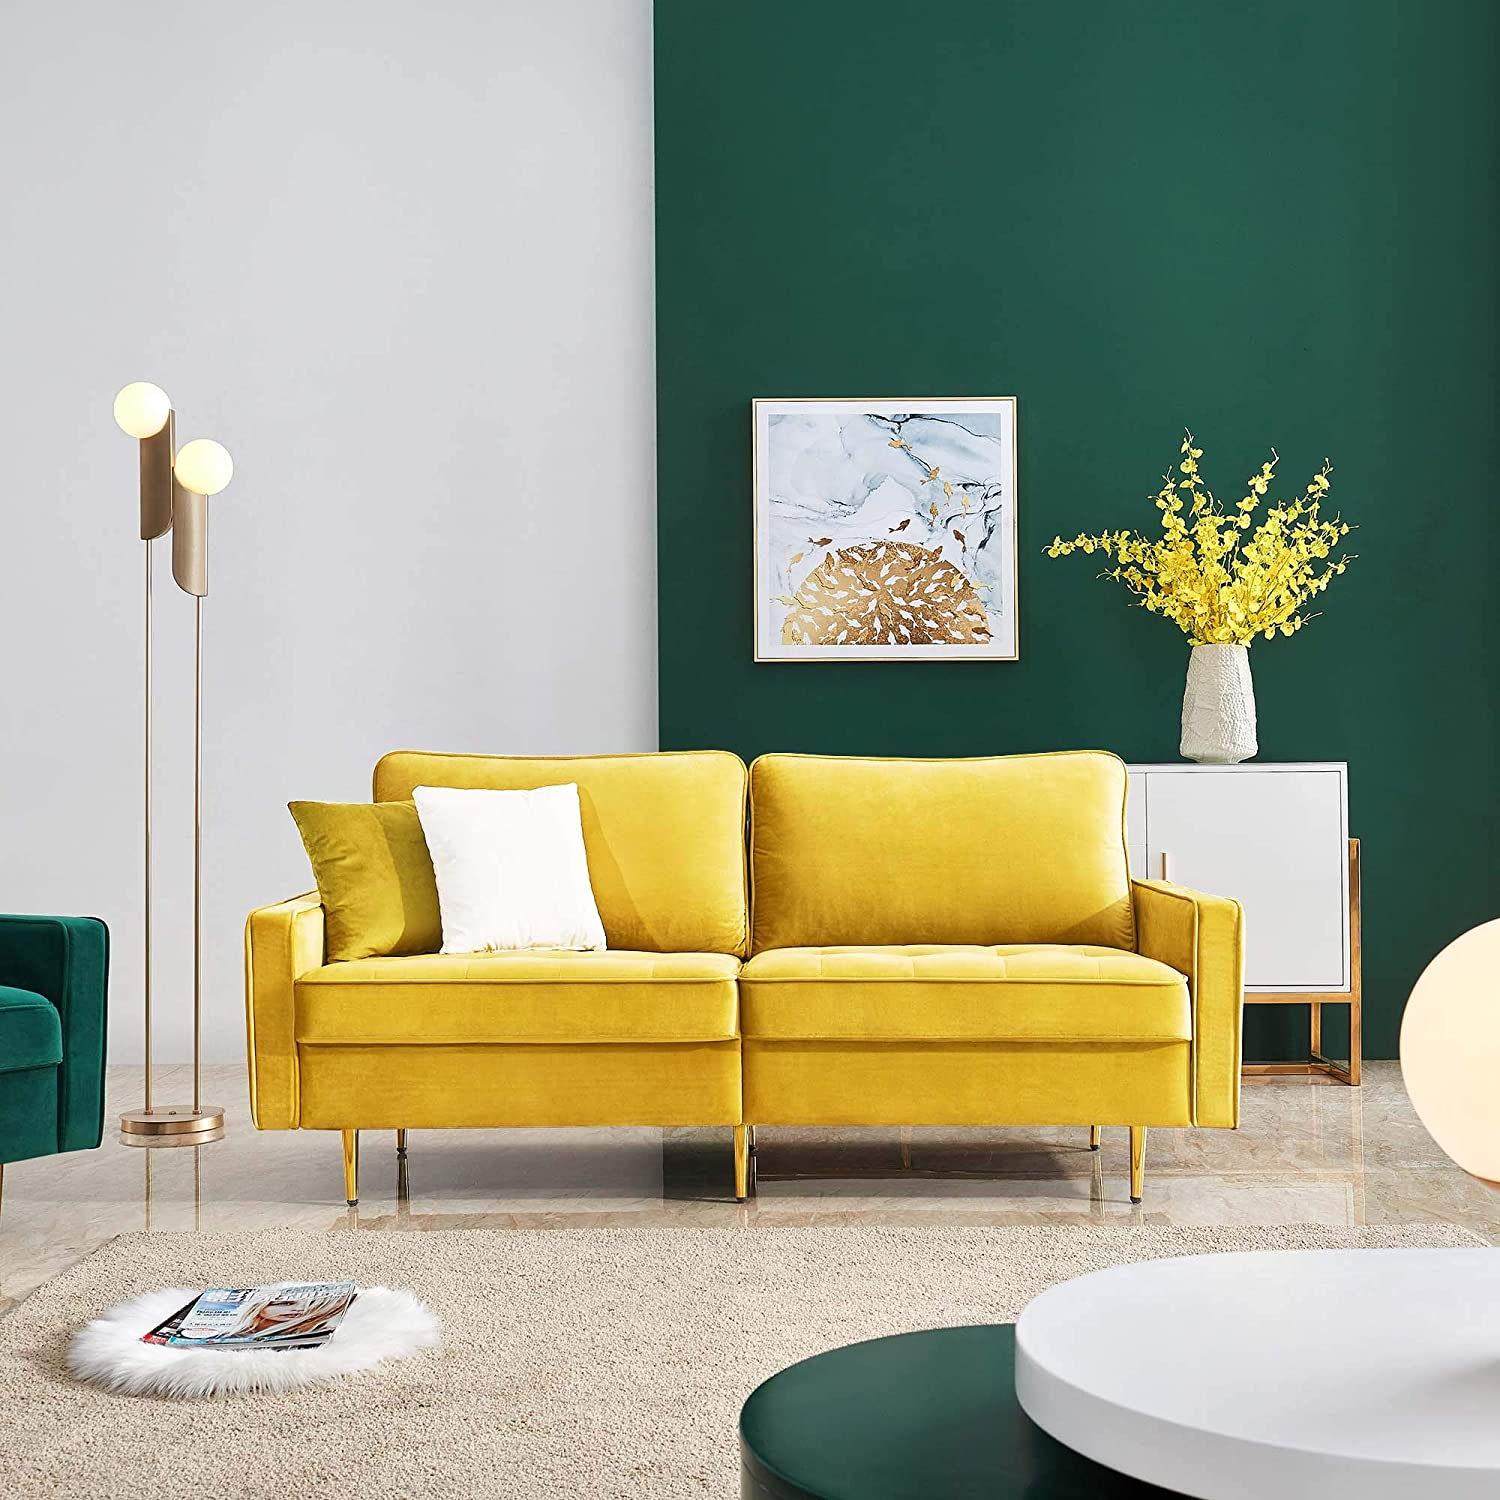 Amazon.com: JULYFOX Yellow Velvet Fabric Sofa Couch, 71 Inch Wide Mid Century Modern Living Room Couch 700lb Heavy Duty: Furniture & Decor